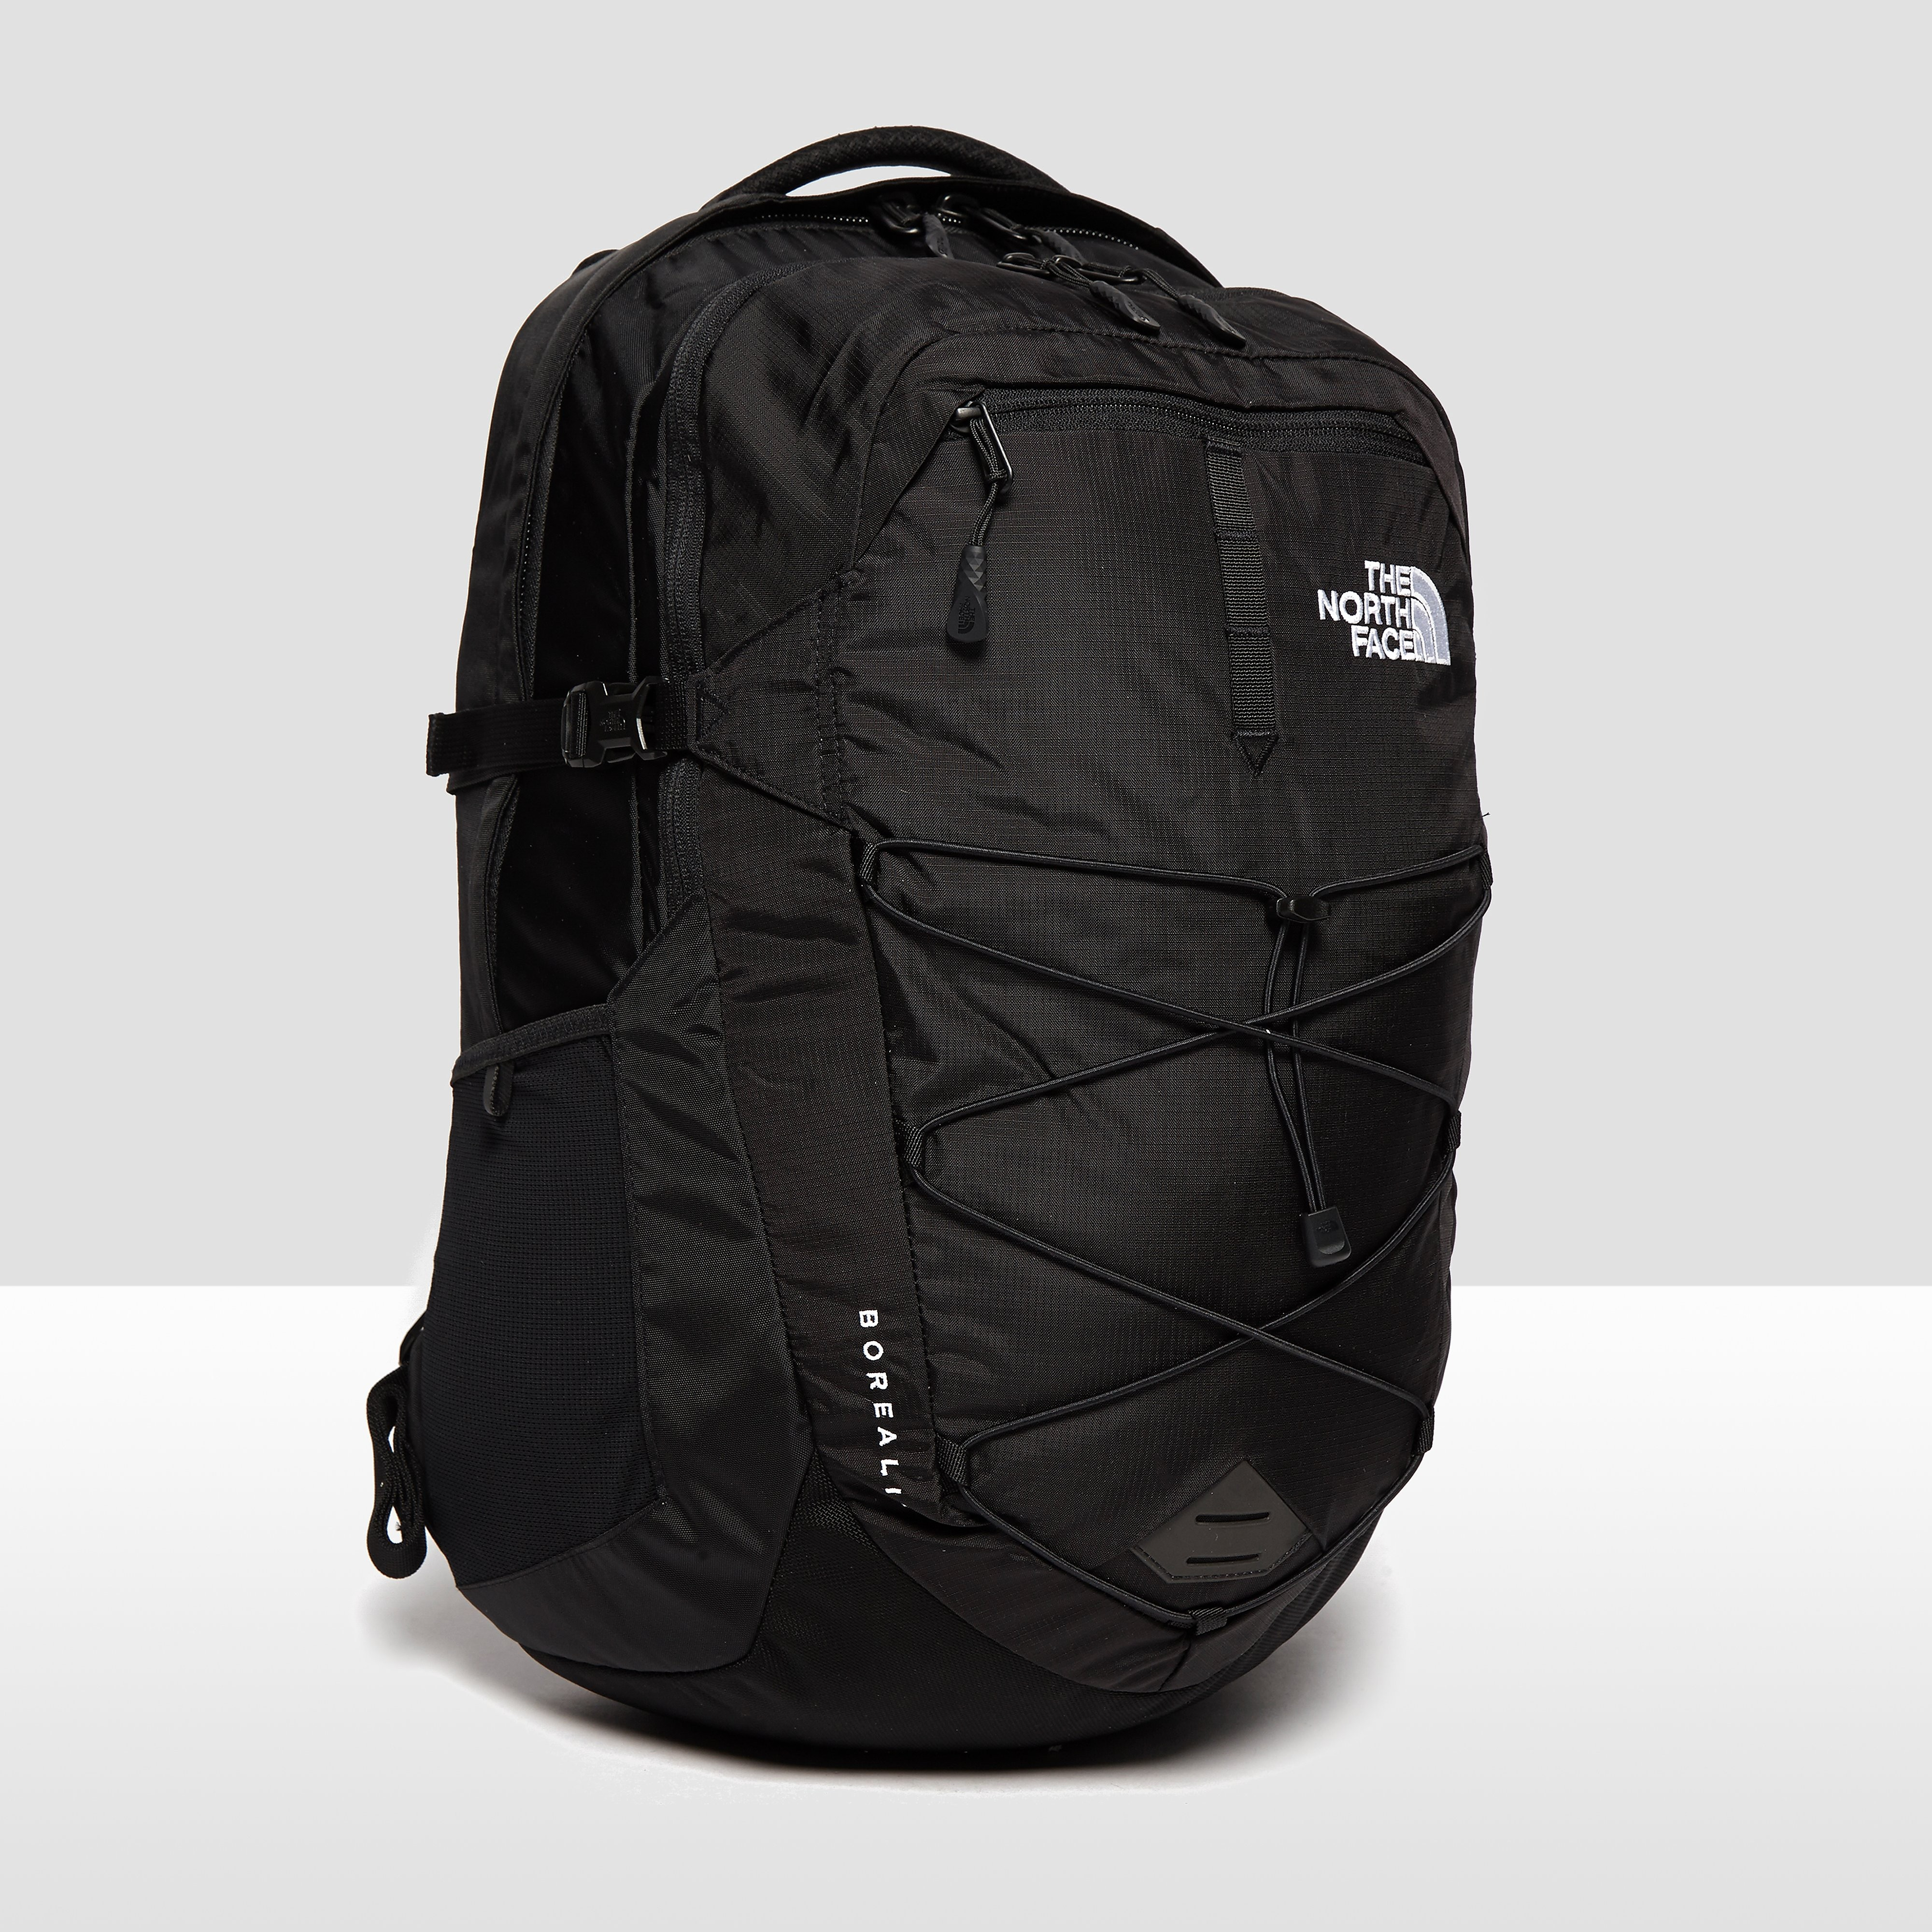 The North Face 28 L Capacity Backpack